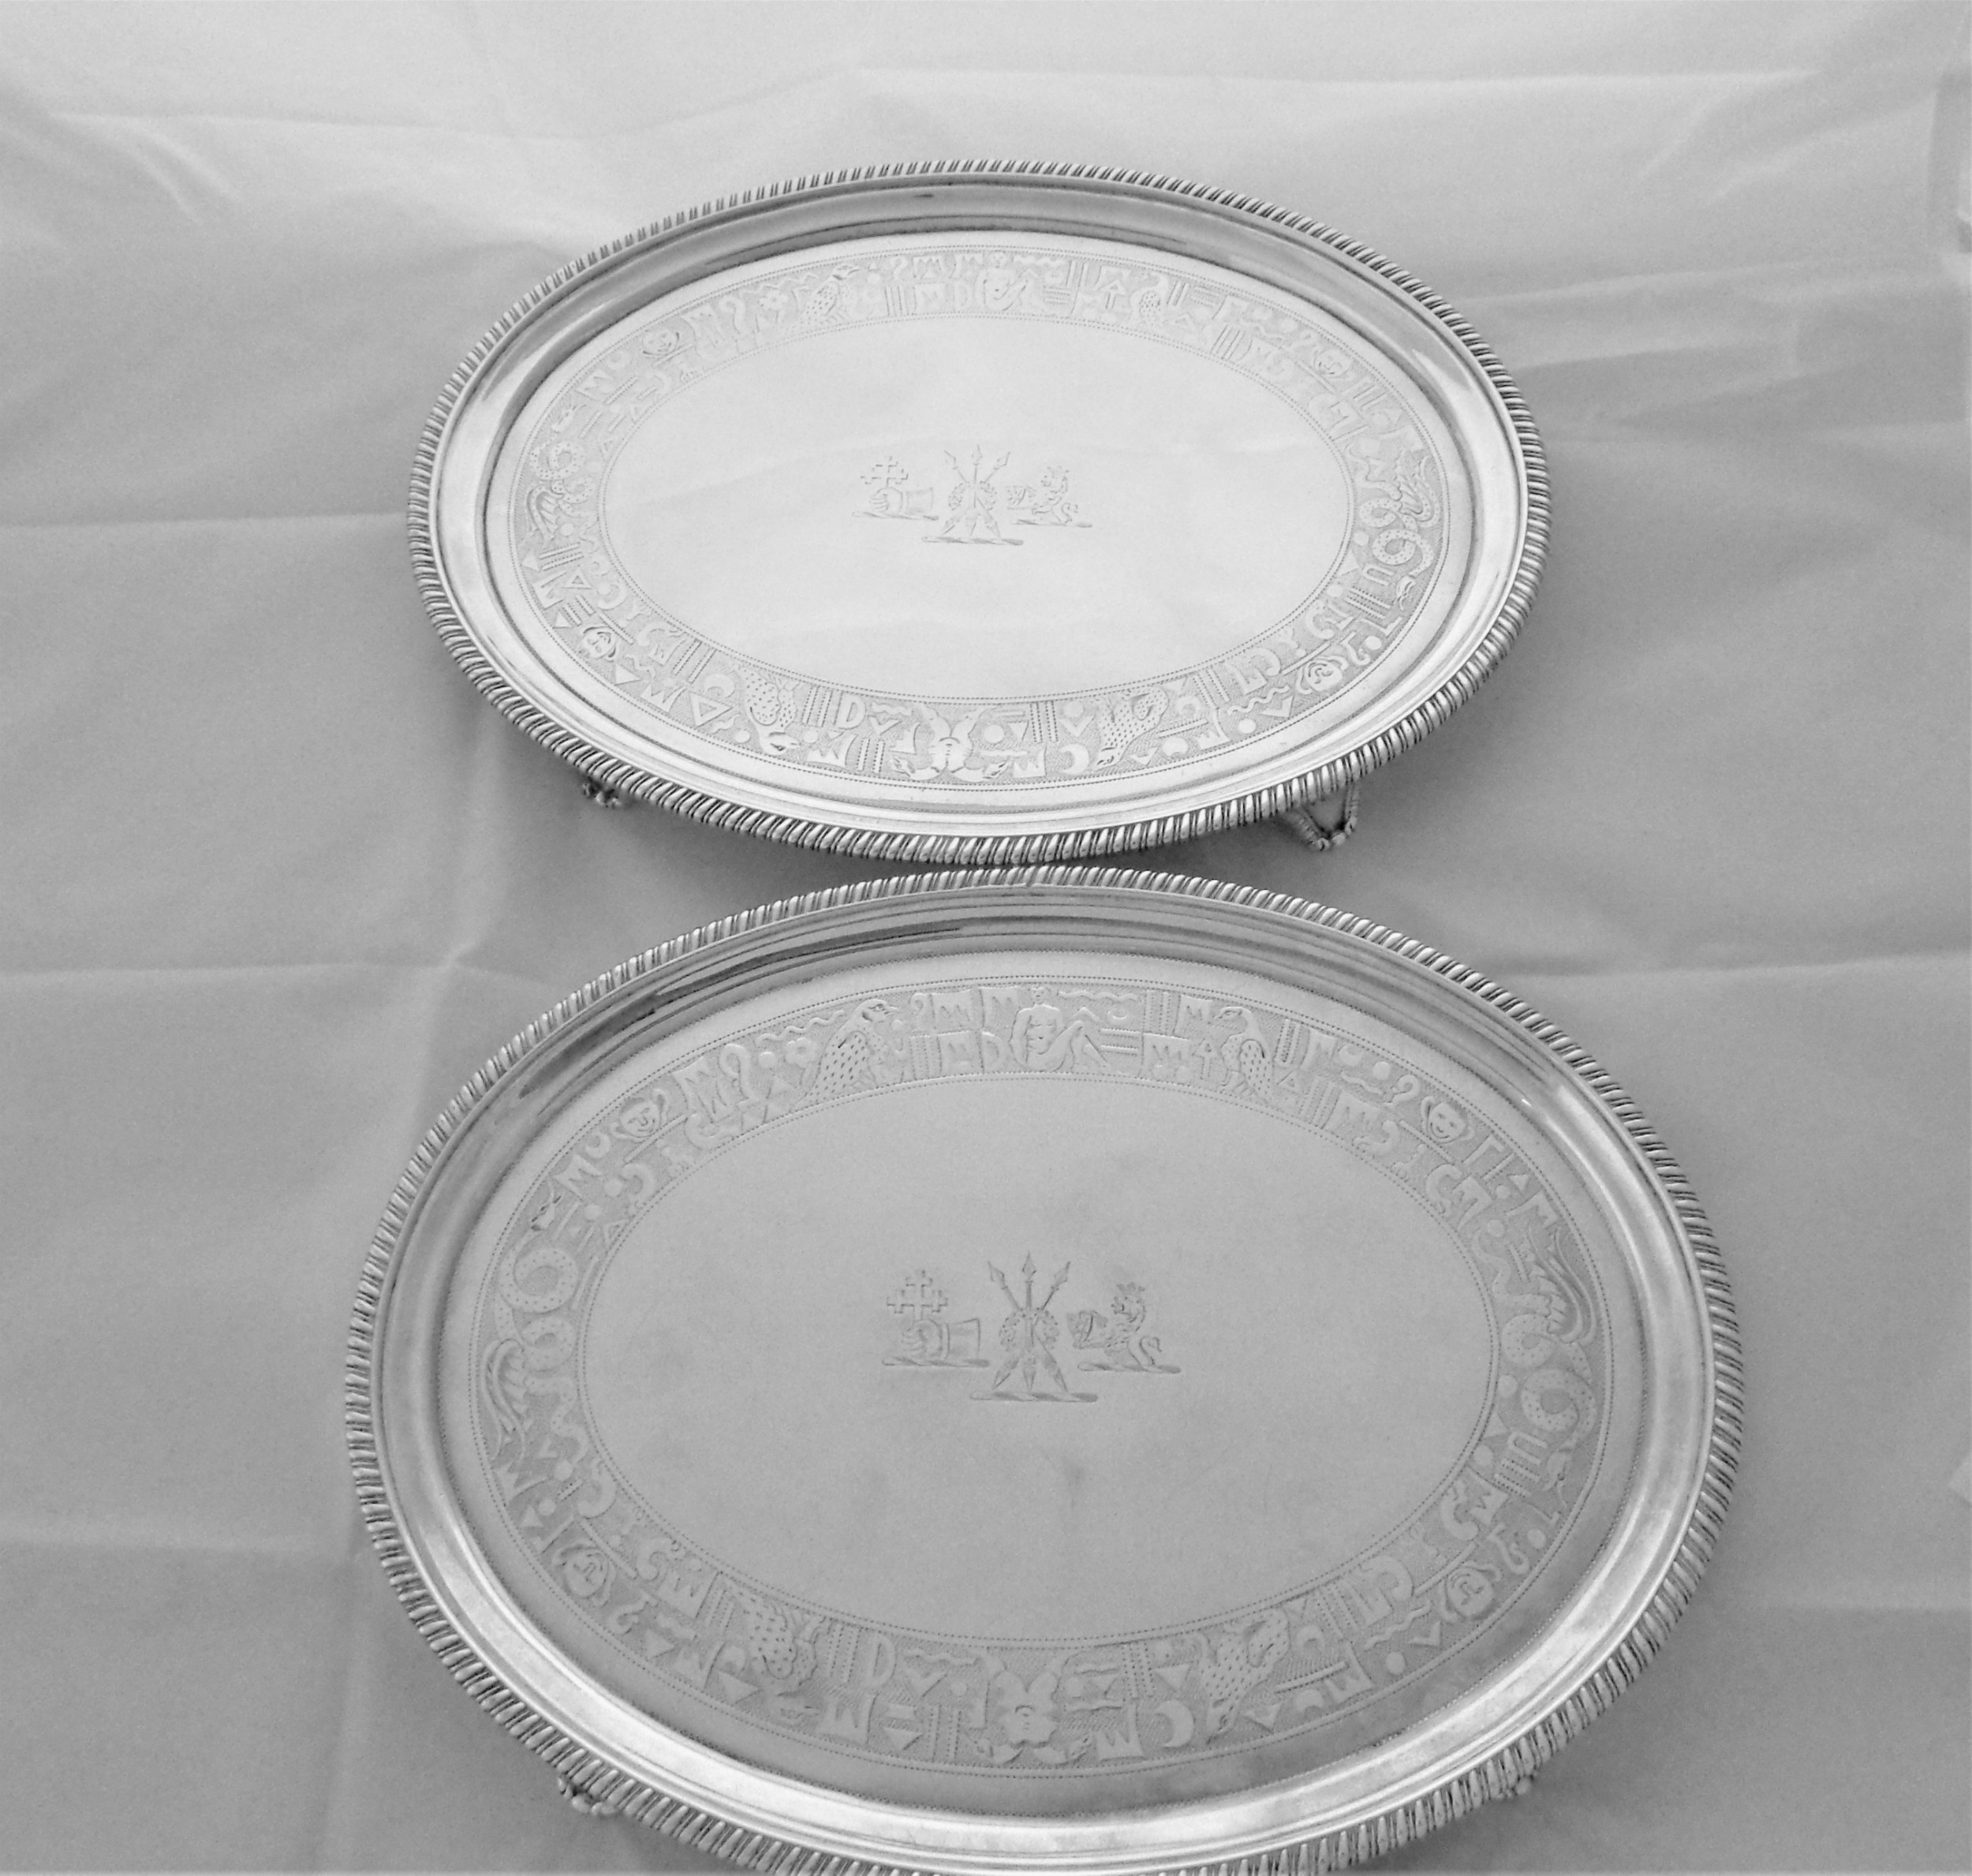 quality pair treble crested oval george iii silver salvers london 1807 william bennett